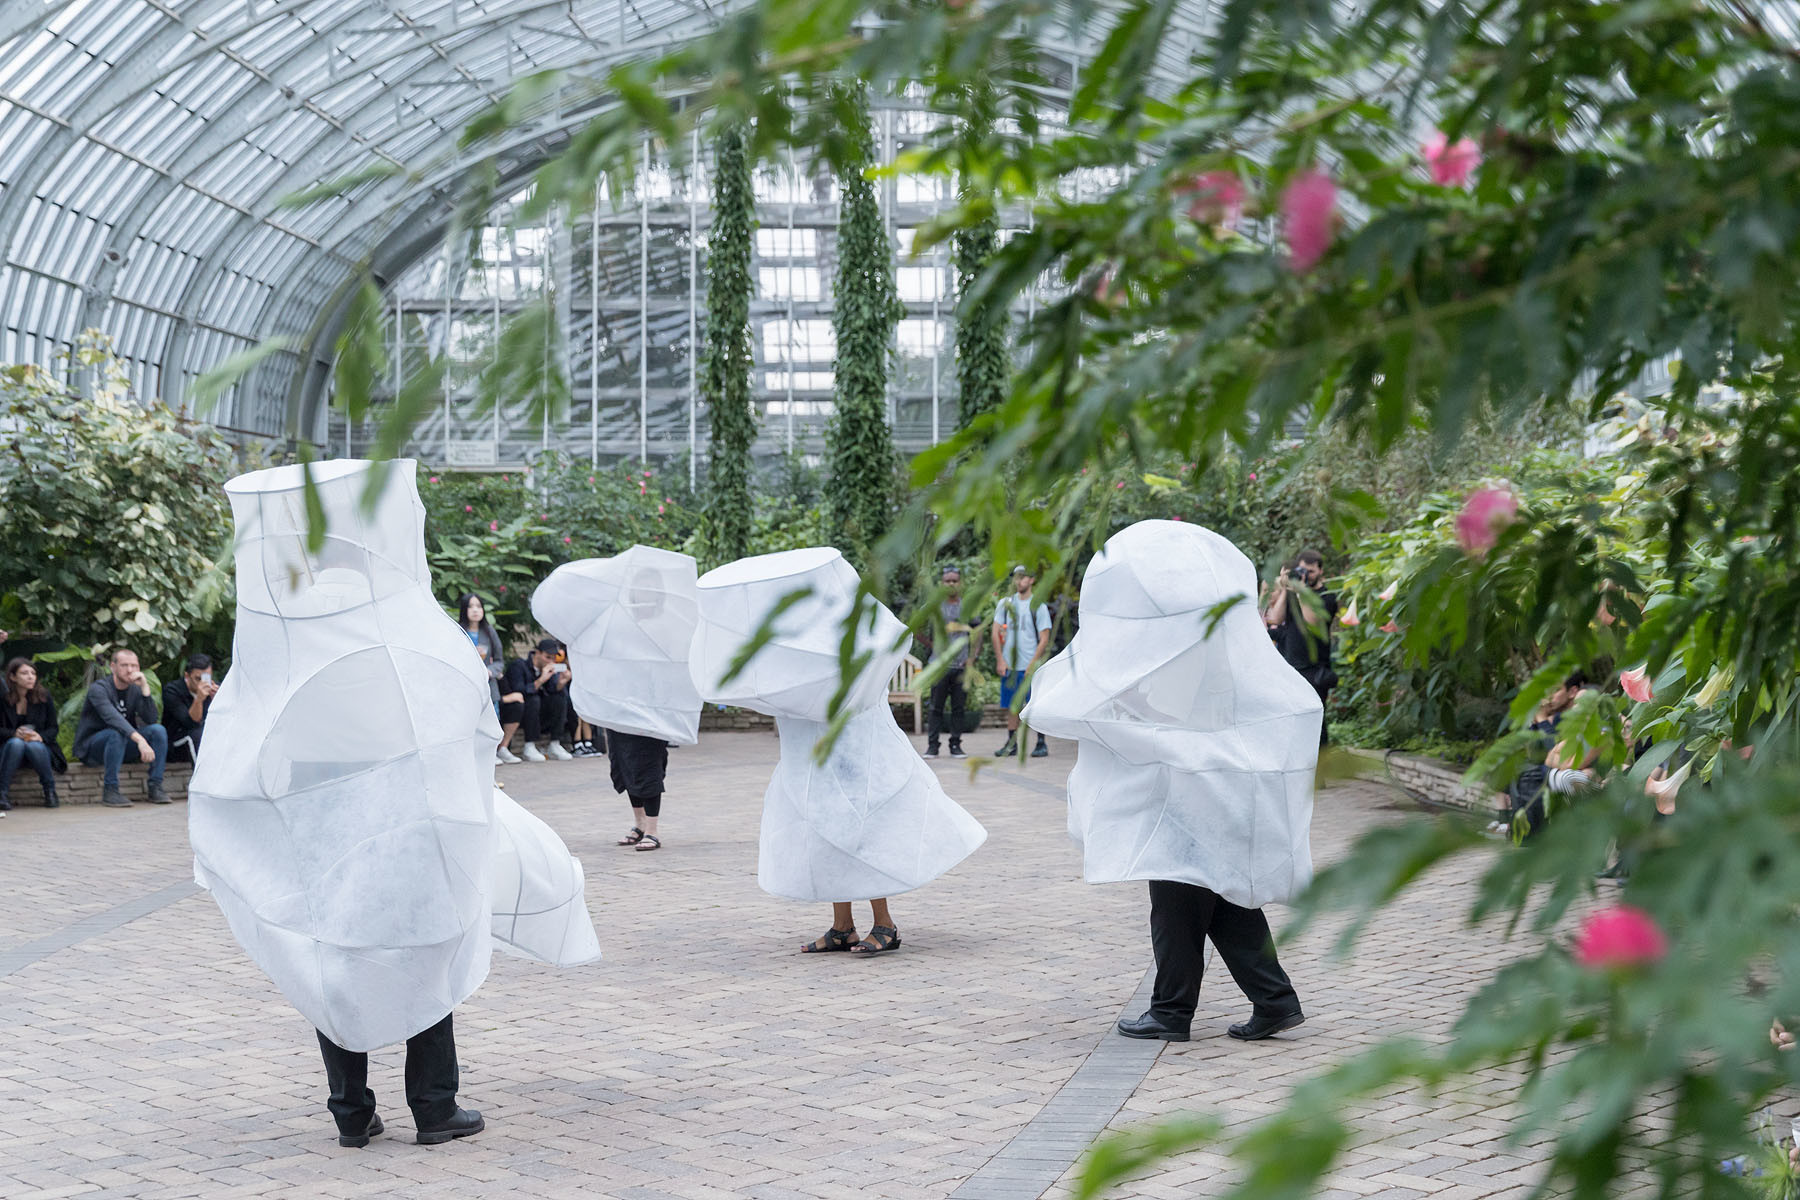 A biennial performance at the Garfield Park Conservatory was a collaboration between New York firm SO-IL and artist Ana Prvački, with music by the Los Angeles composer Veronika Krausas.